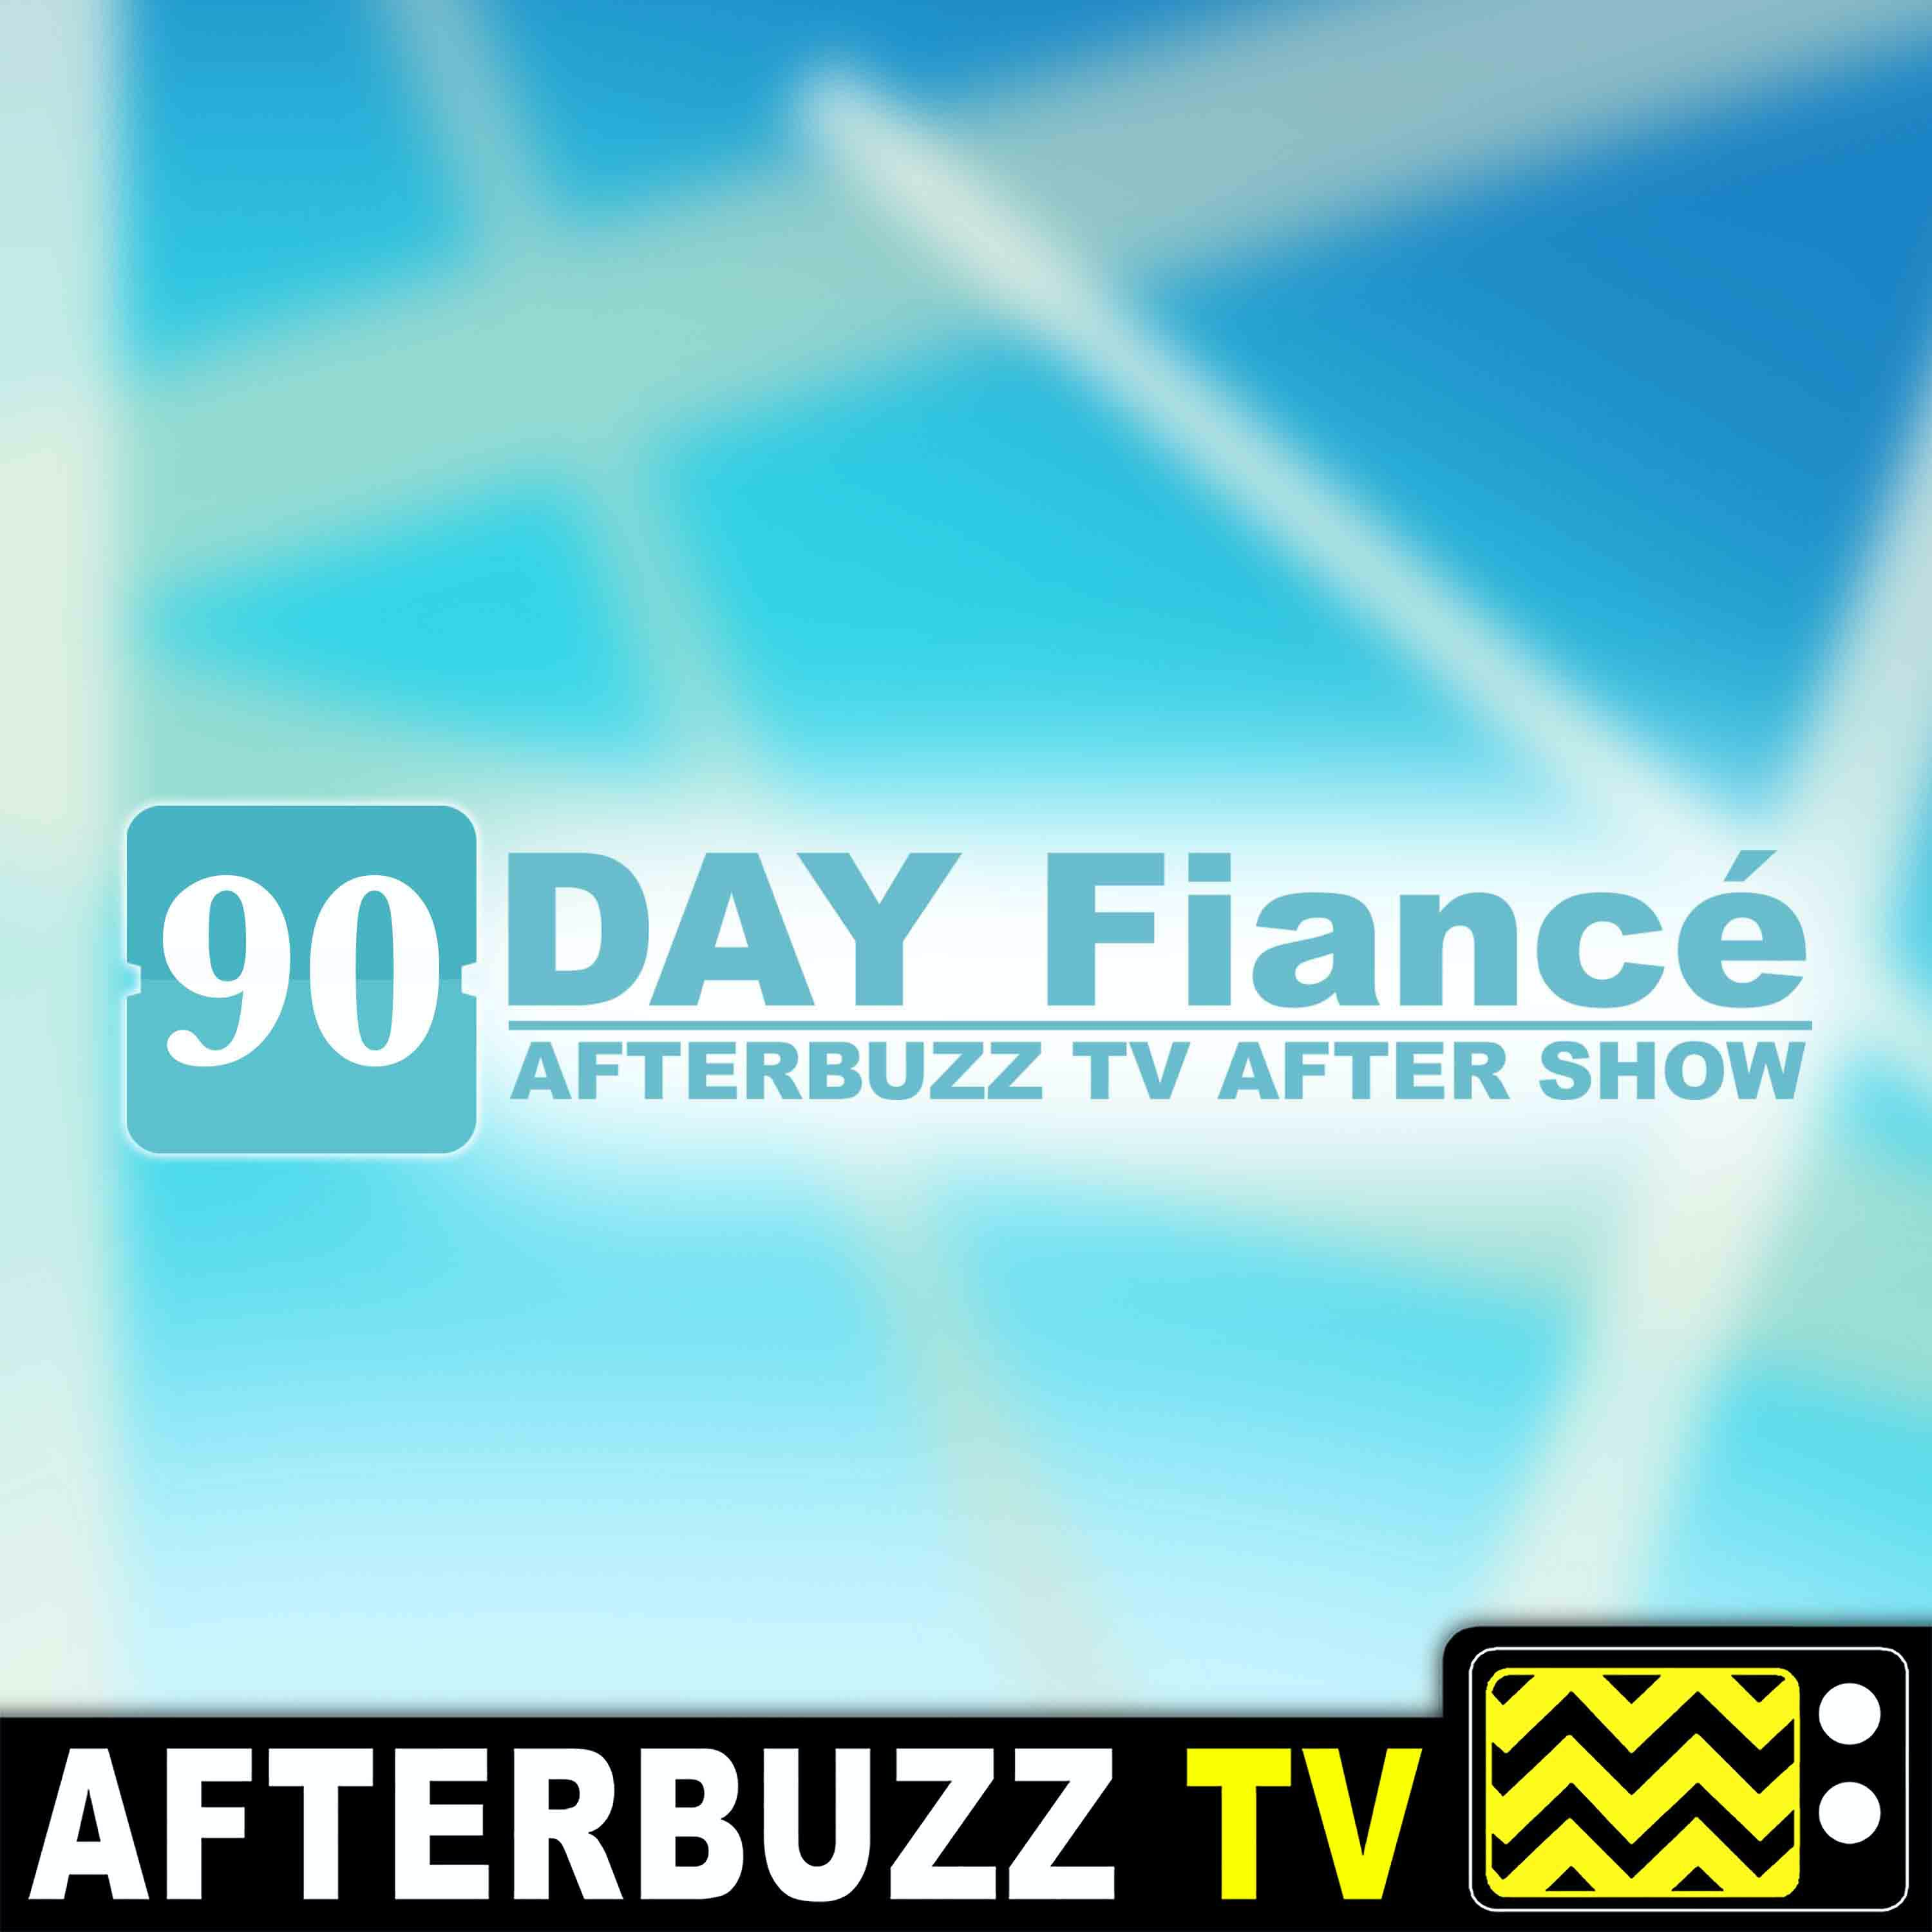 Stephanie and Ericka Take a Walk on the Wild Side - S4 E5 '90 Day Fiancé: Before the 90 Days' Review & Recap